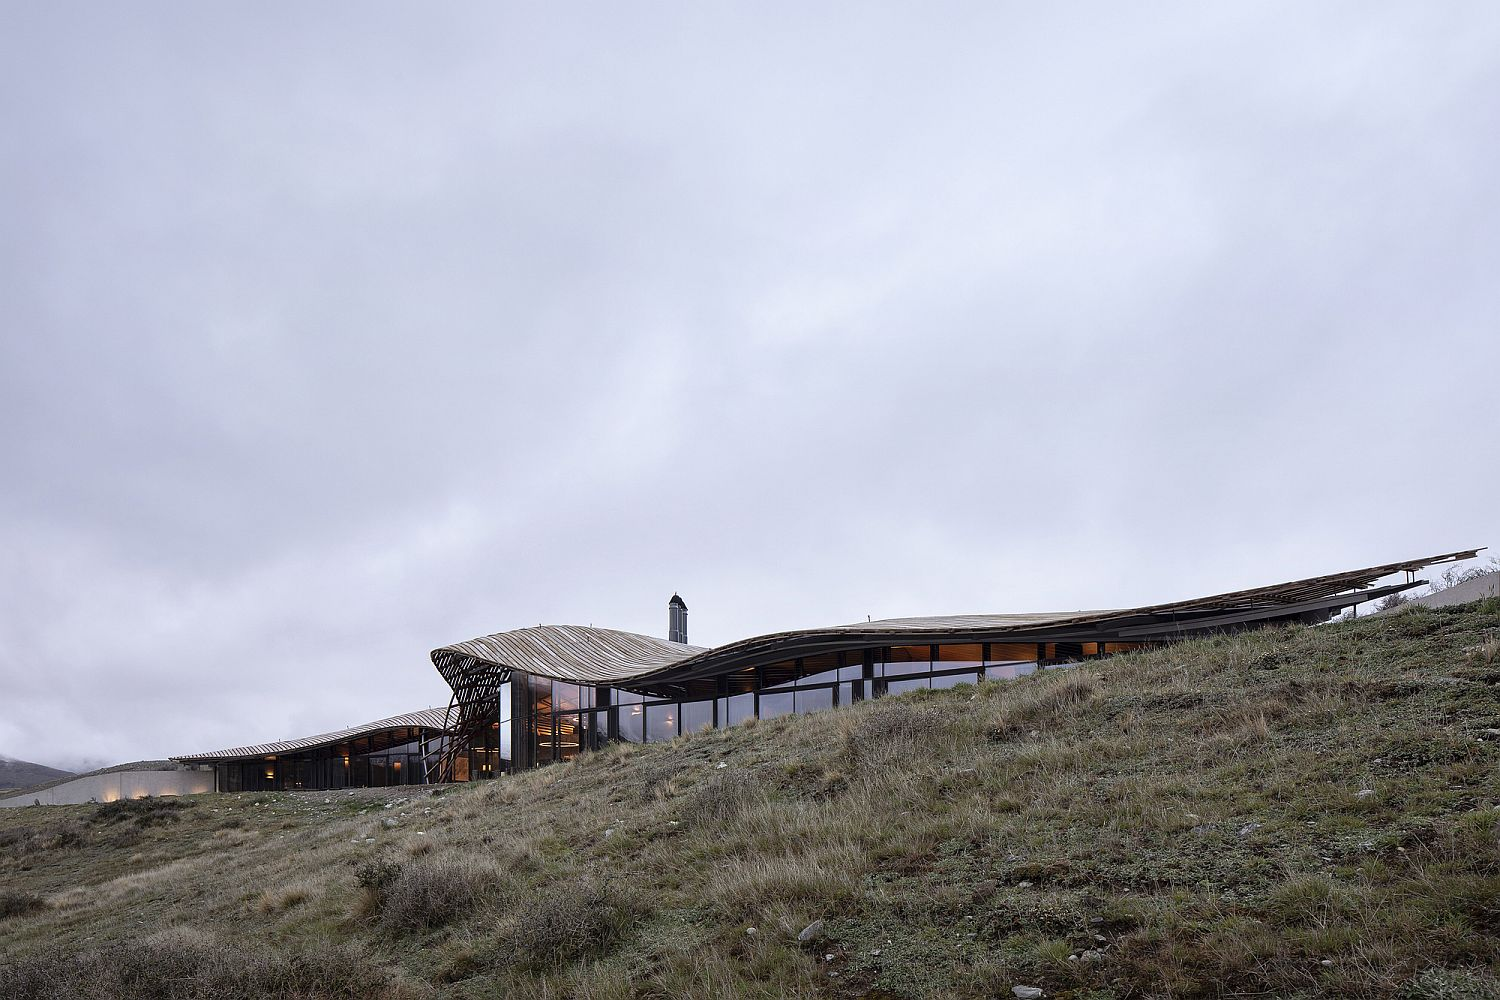 Fabulous complex gridshell roof of the stunning lodge in New Zealand